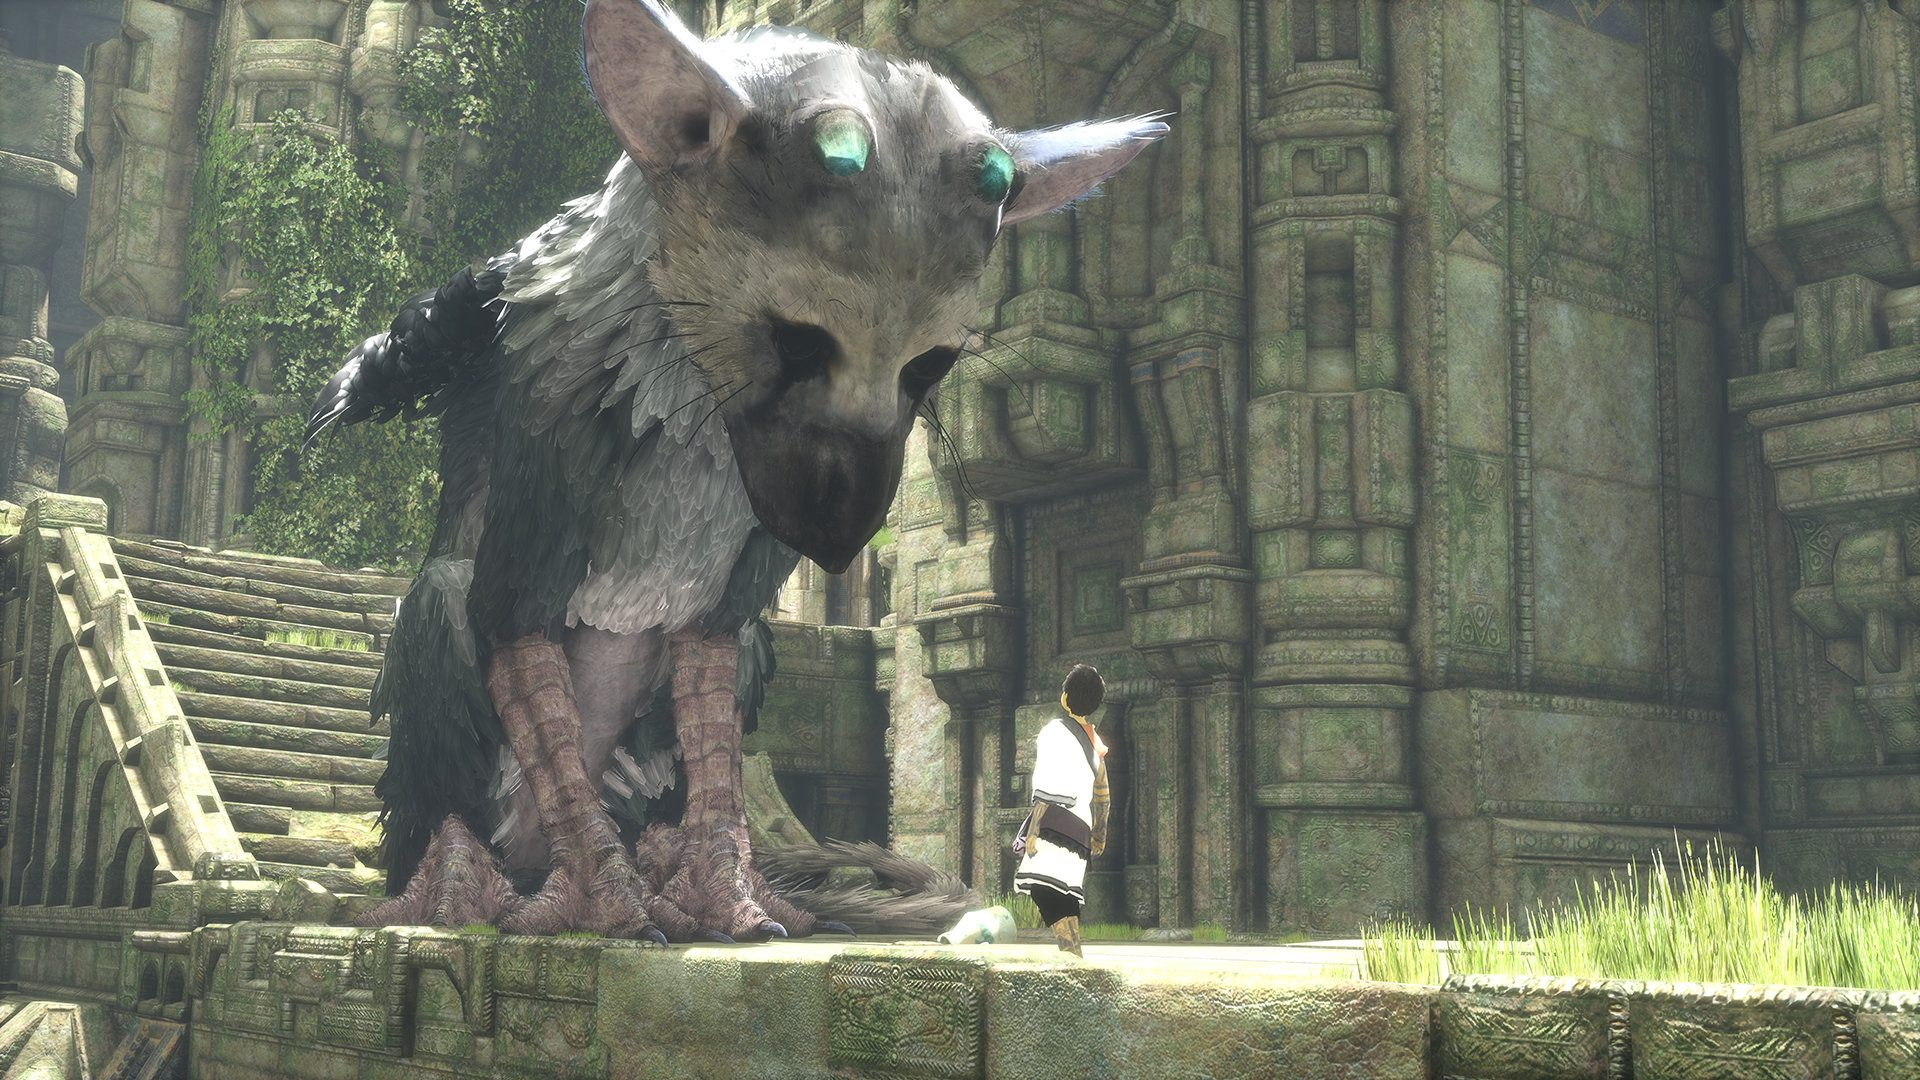 A boy and his bird dog in The Last Guardian